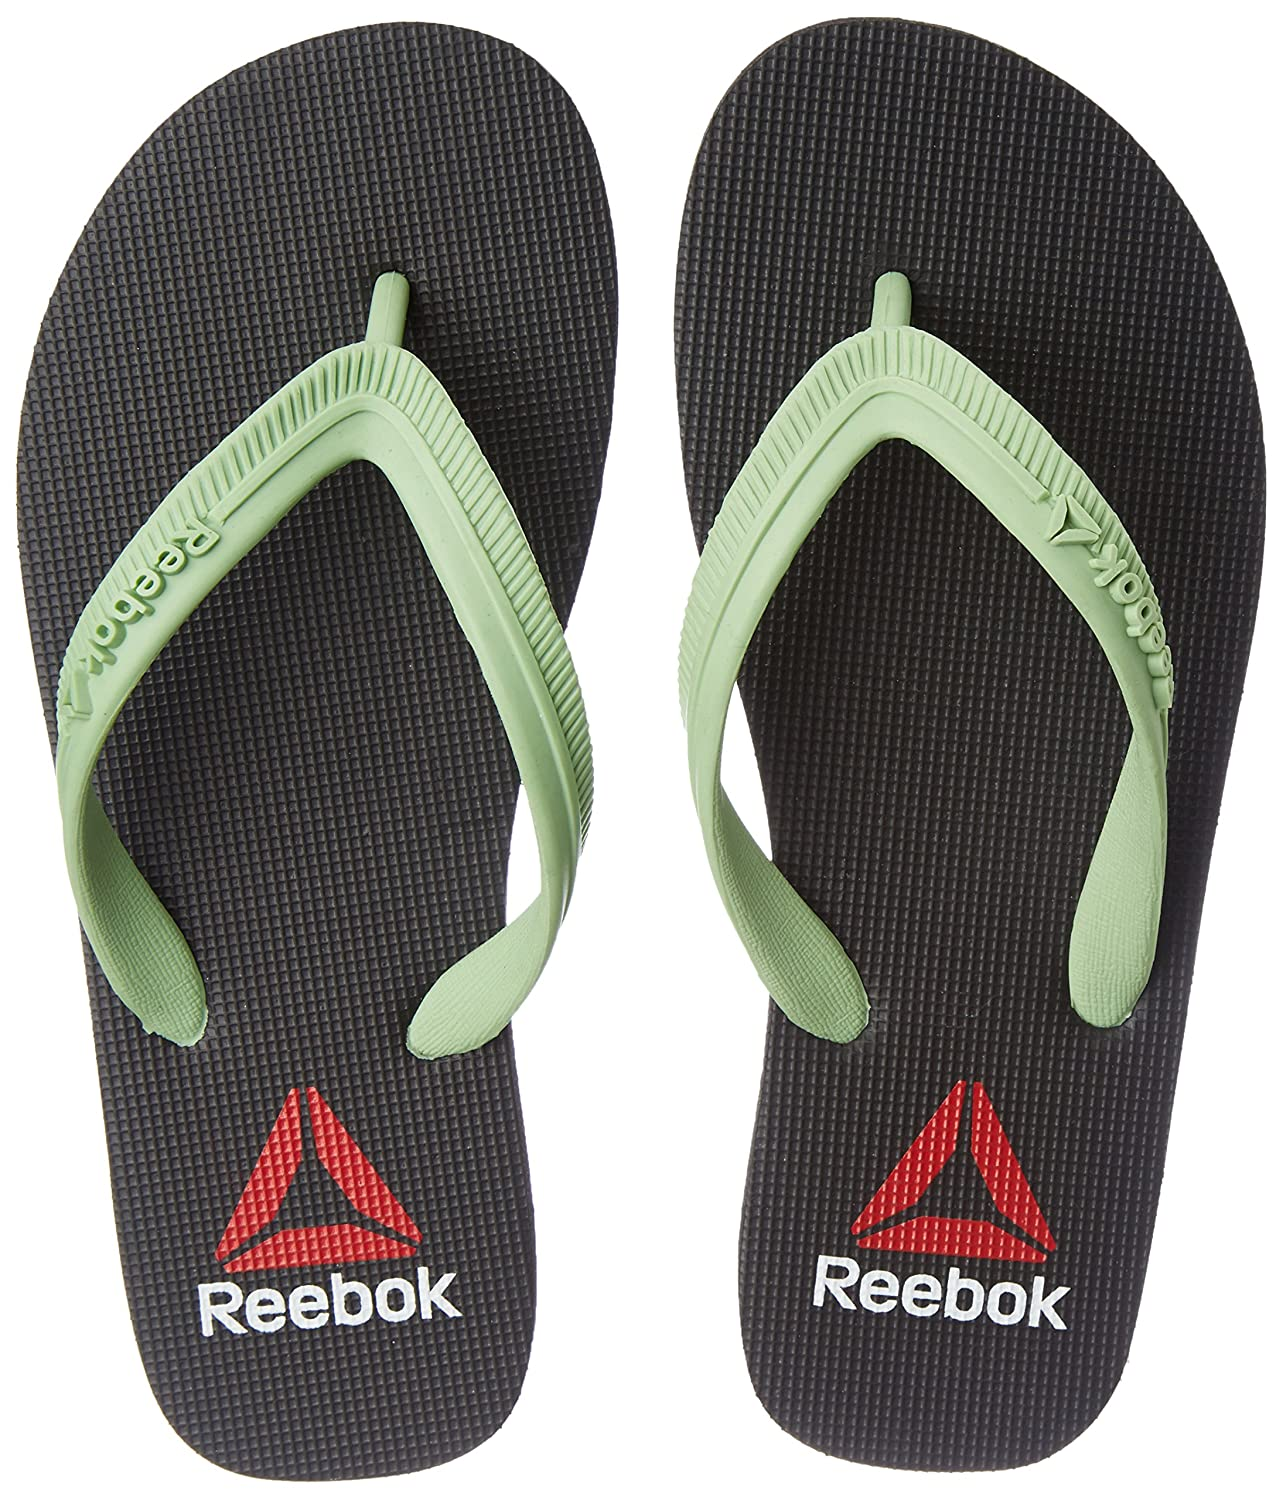 Slippers Reebok Plastic And Avenger Flip Flops Women's Moulded House 6gYb7vfy